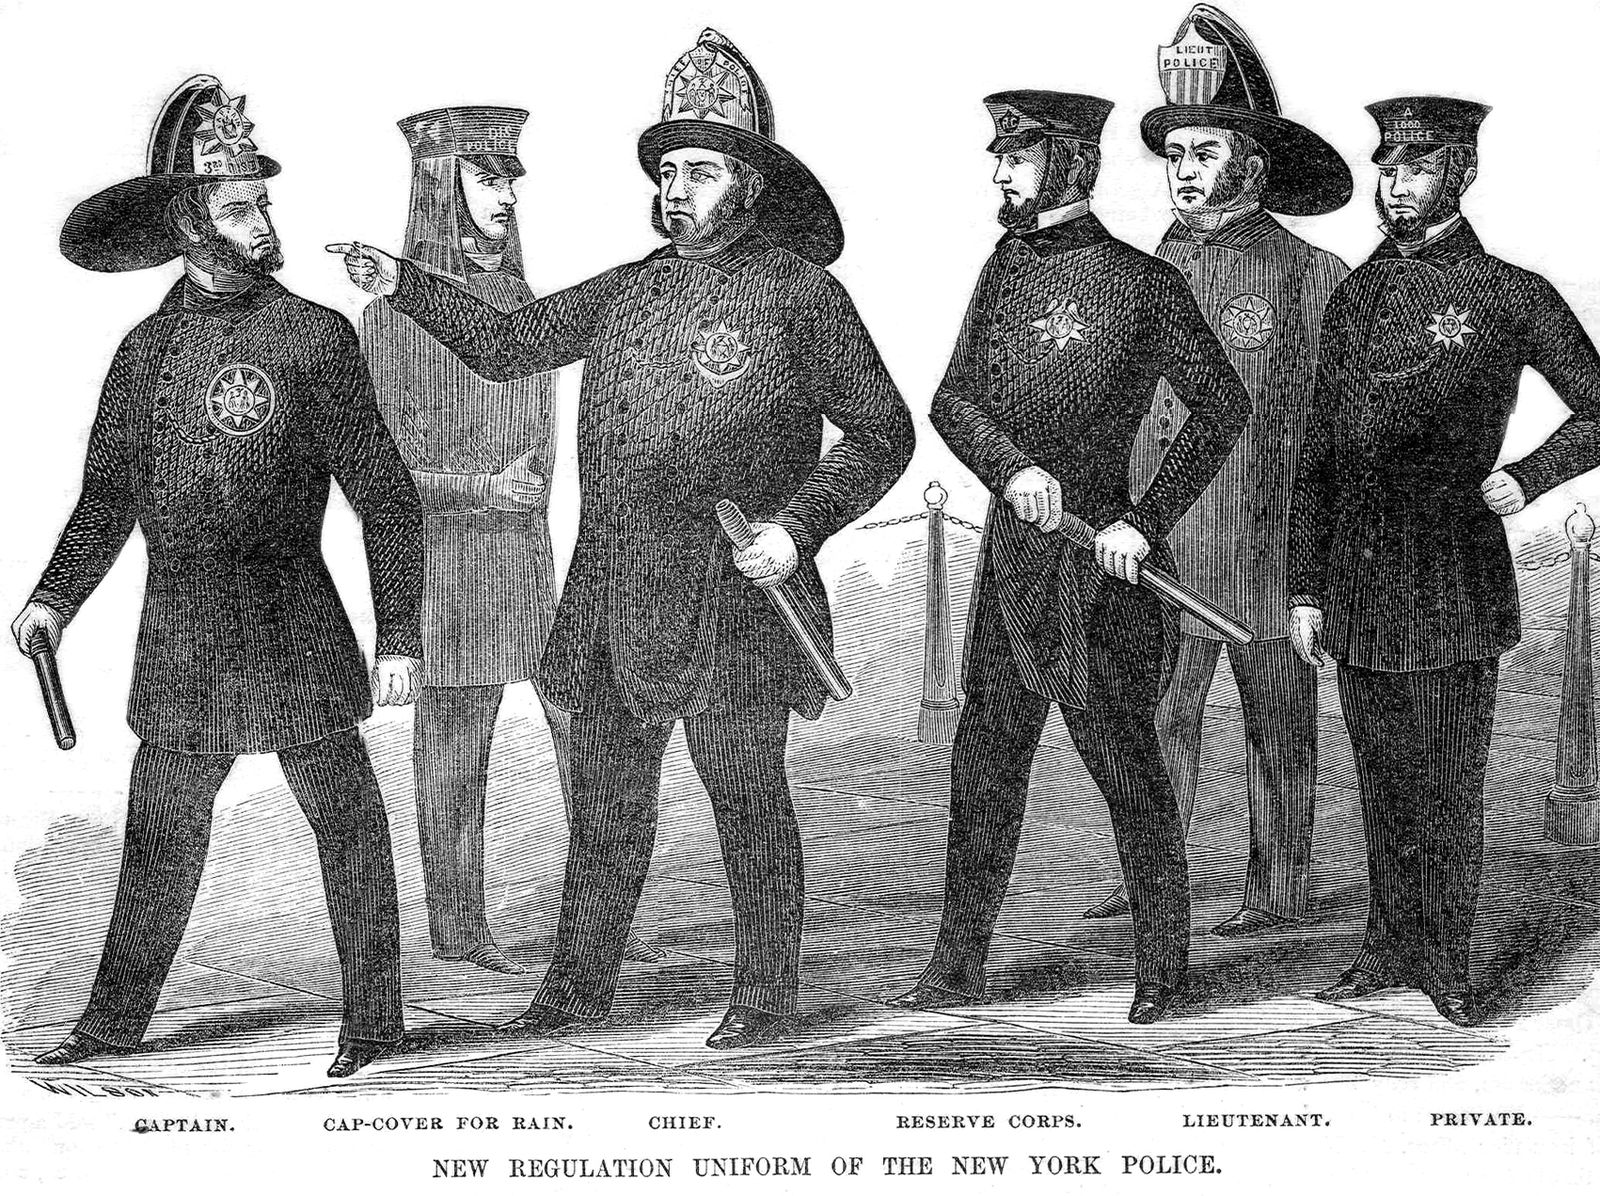 New York police uniforms circa 1854.